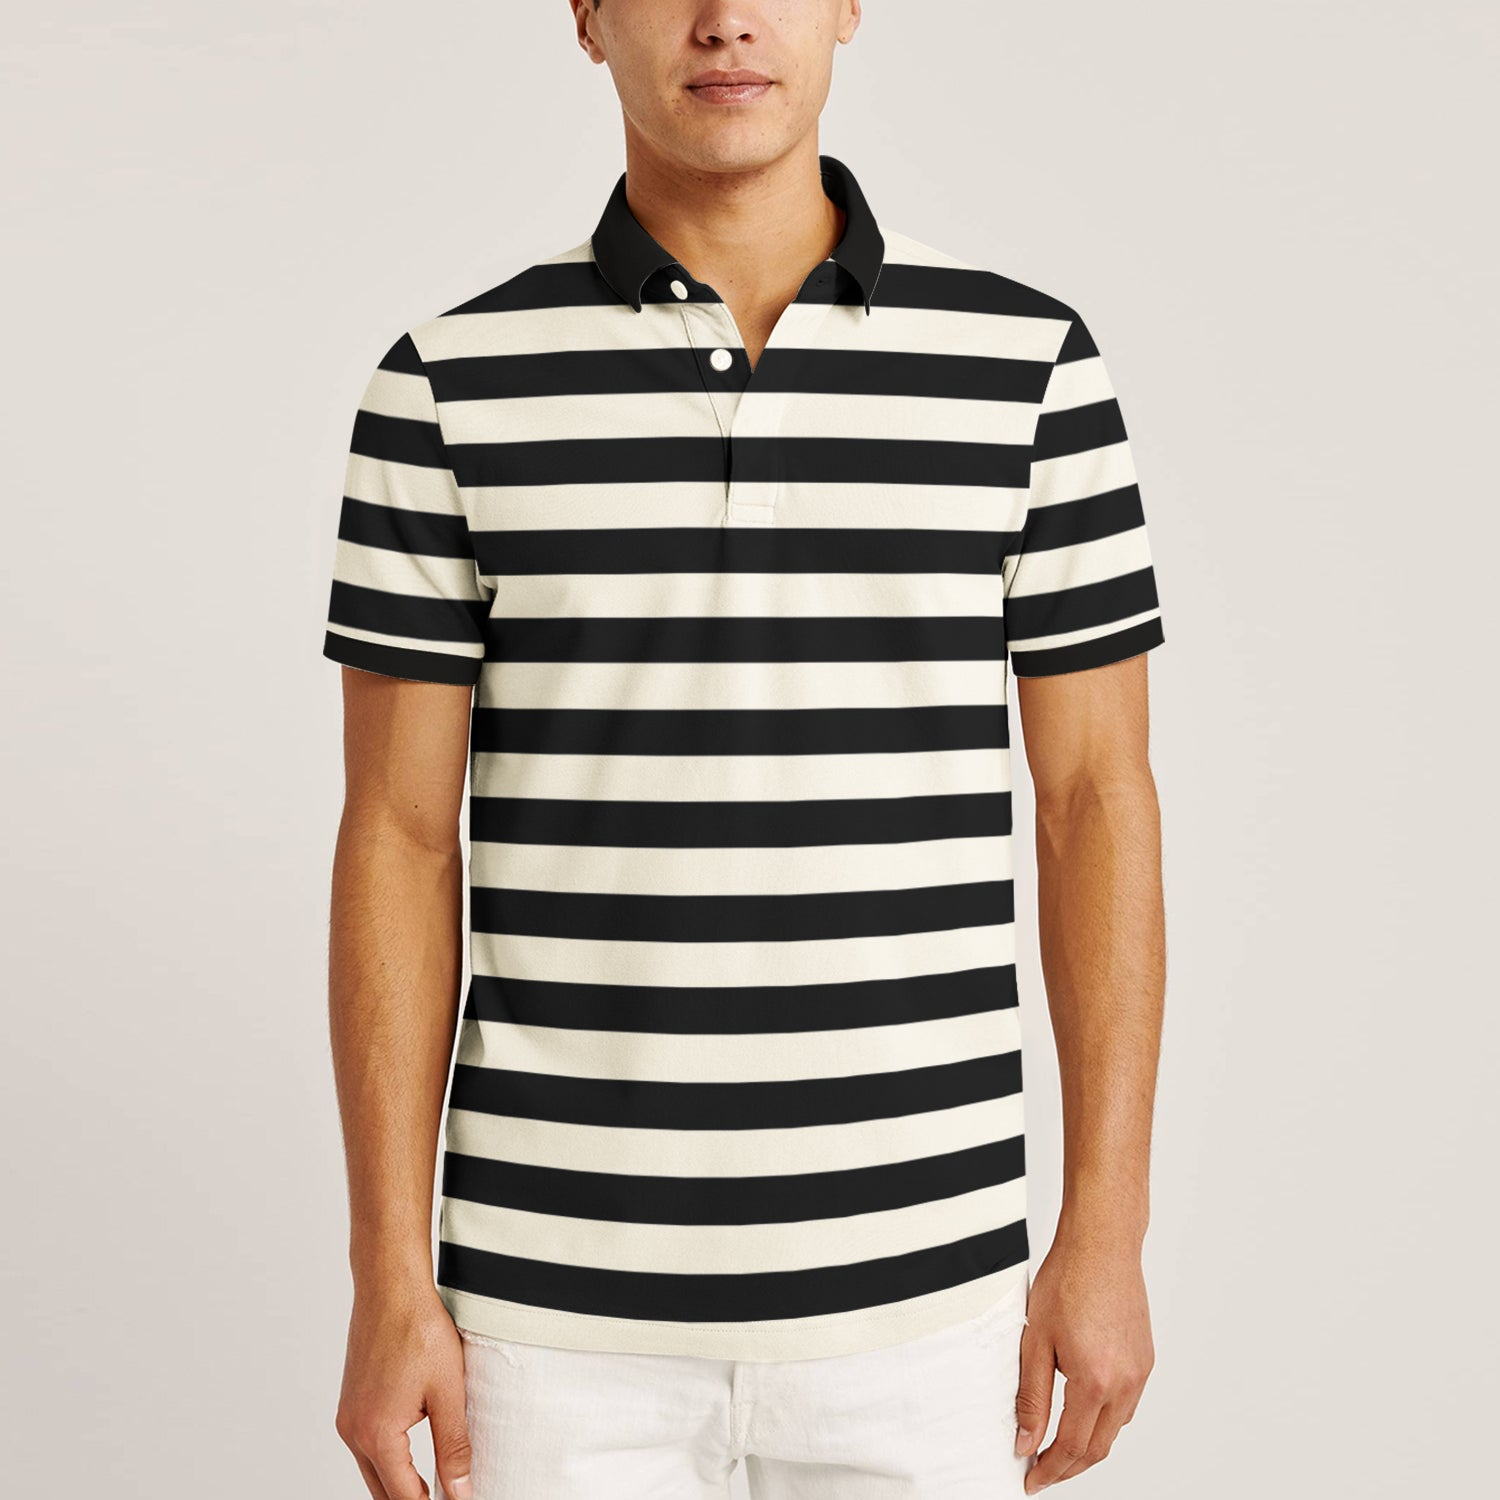 Big Ten Stylish Summer Polo Shirt For Men-Skin with Black Stripe-BE11447